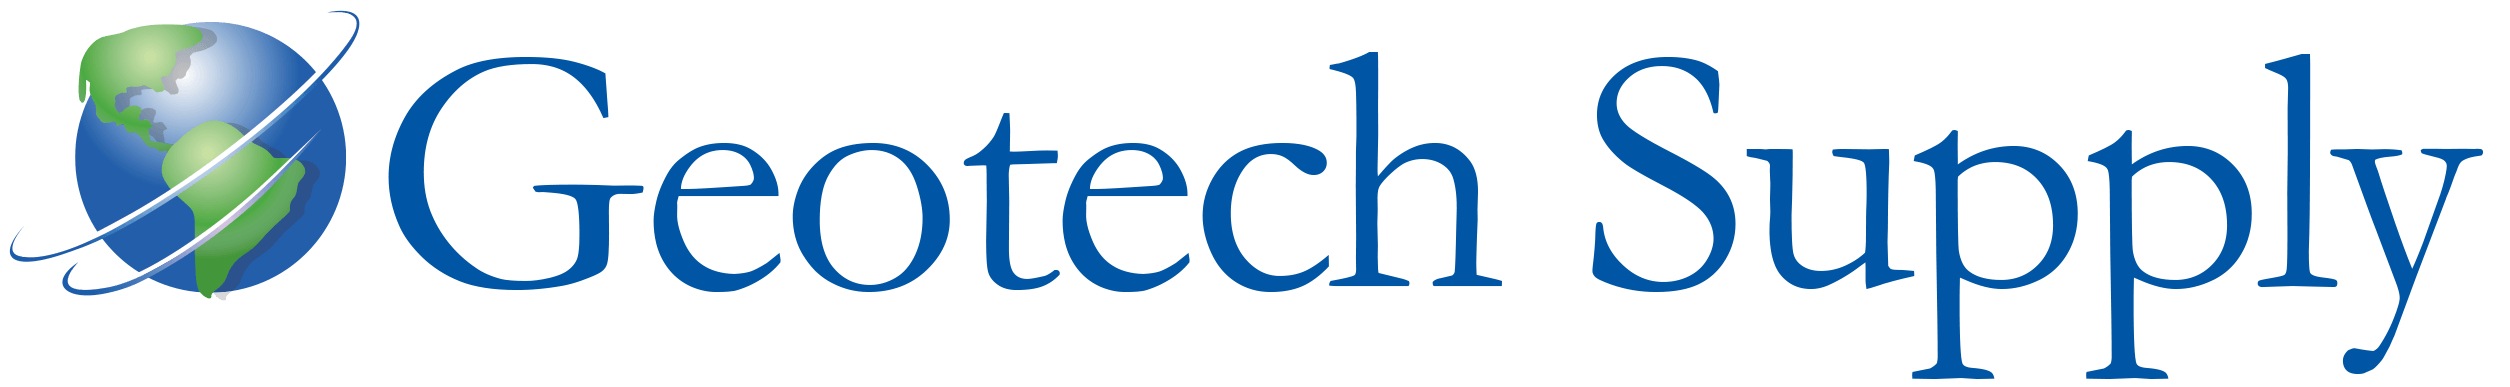 Geotech Supply Logo: Globe with text in blue